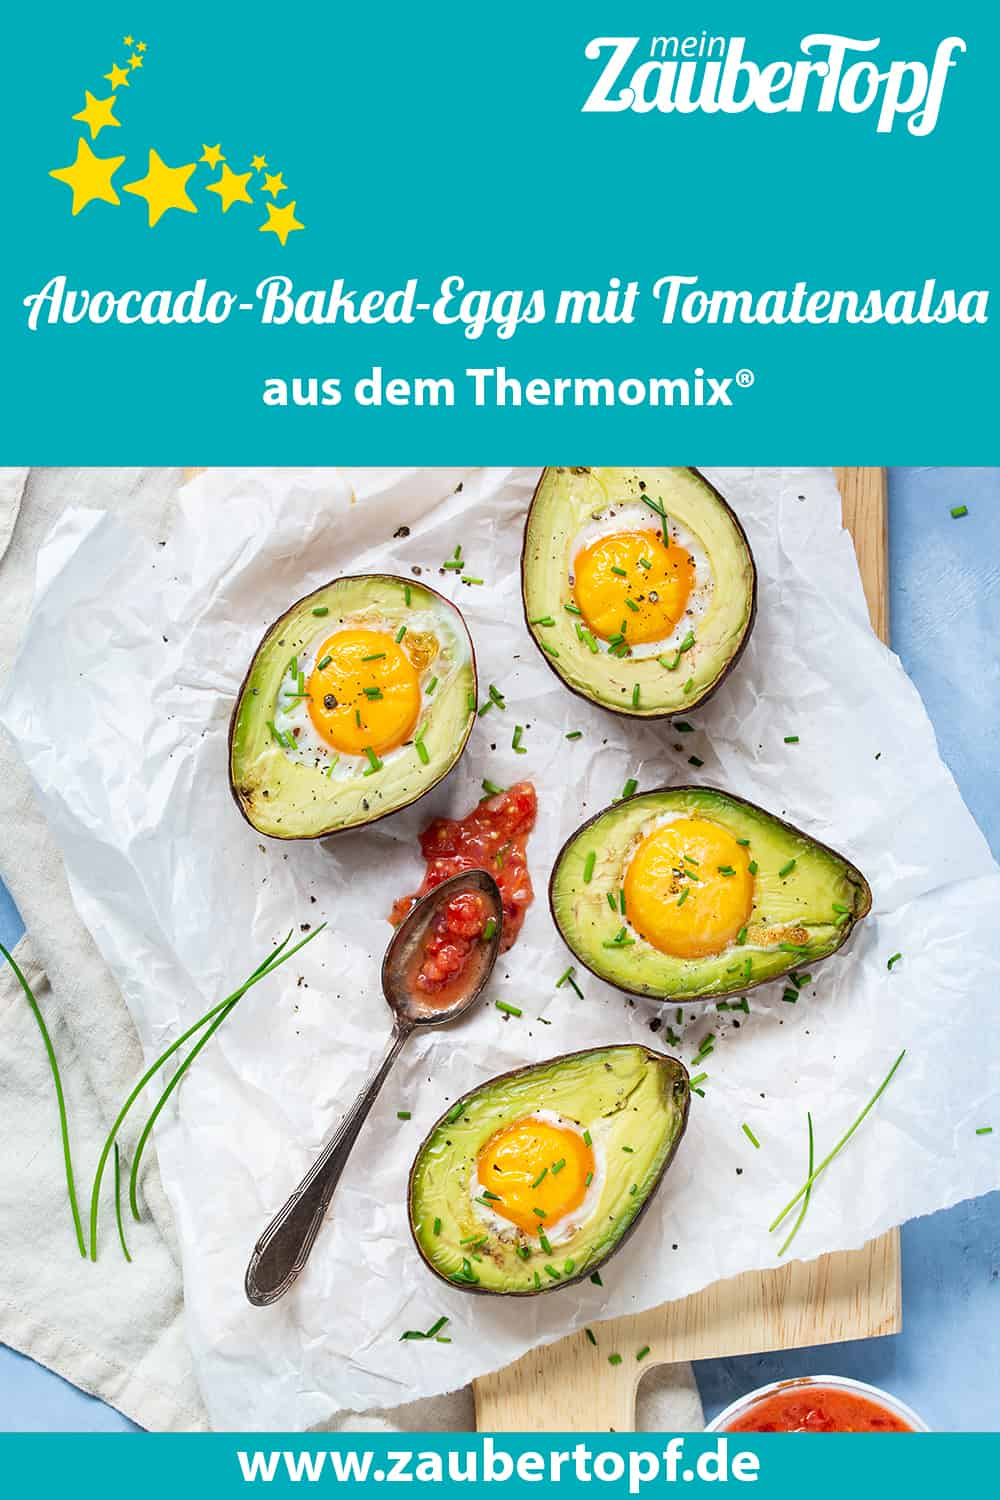 Avocado-Baked-Eggs mit dem Thermomix® – Foto: Kathrin Knoll